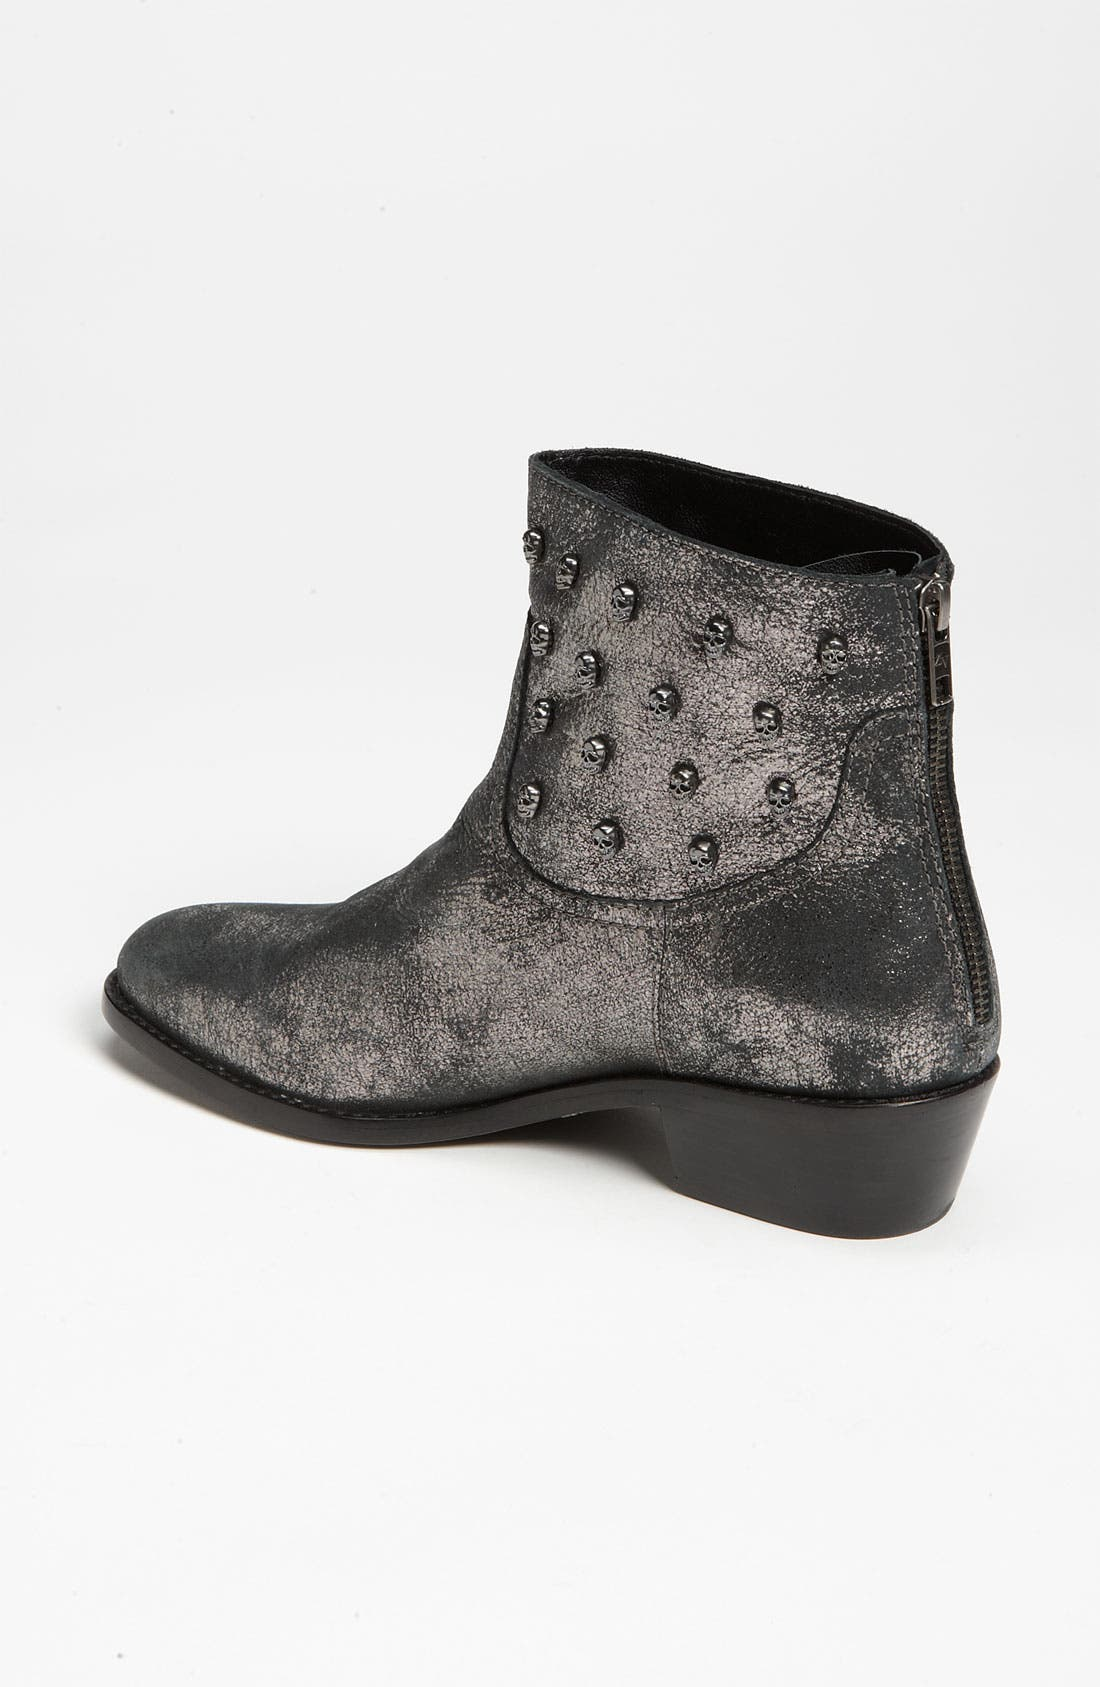 ZADIG & VOLTAIRE,                             'Teddy' Boot,                             Alternate thumbnail 4, color,                             001